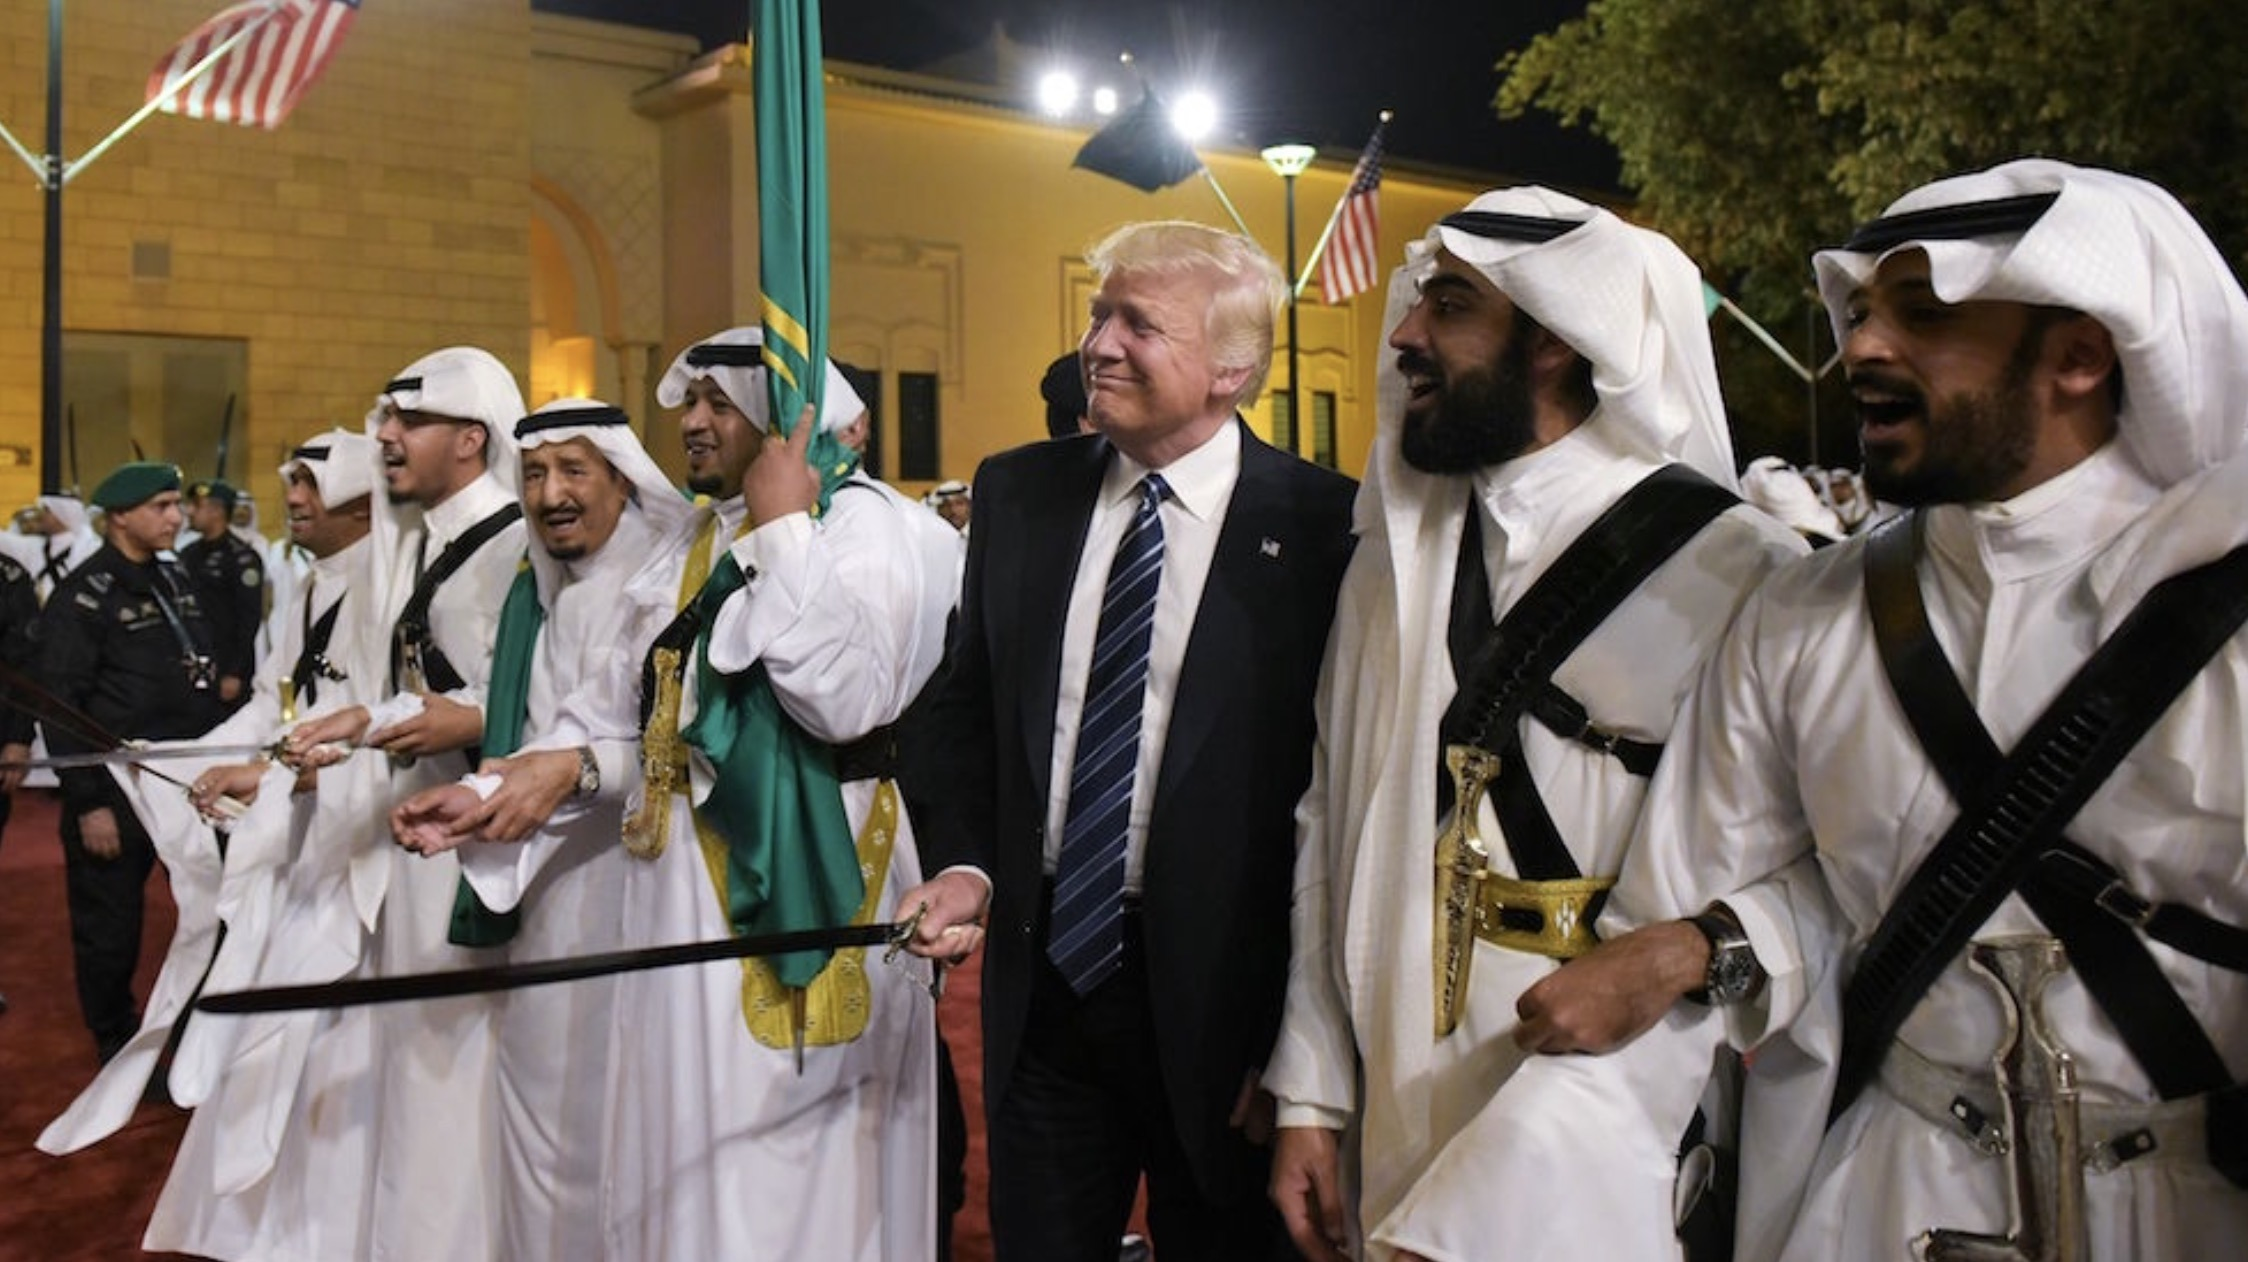 The U.S. and Saudi Arabia Are About to Make More Disastrous and Idiotic Mistakes – Part 2